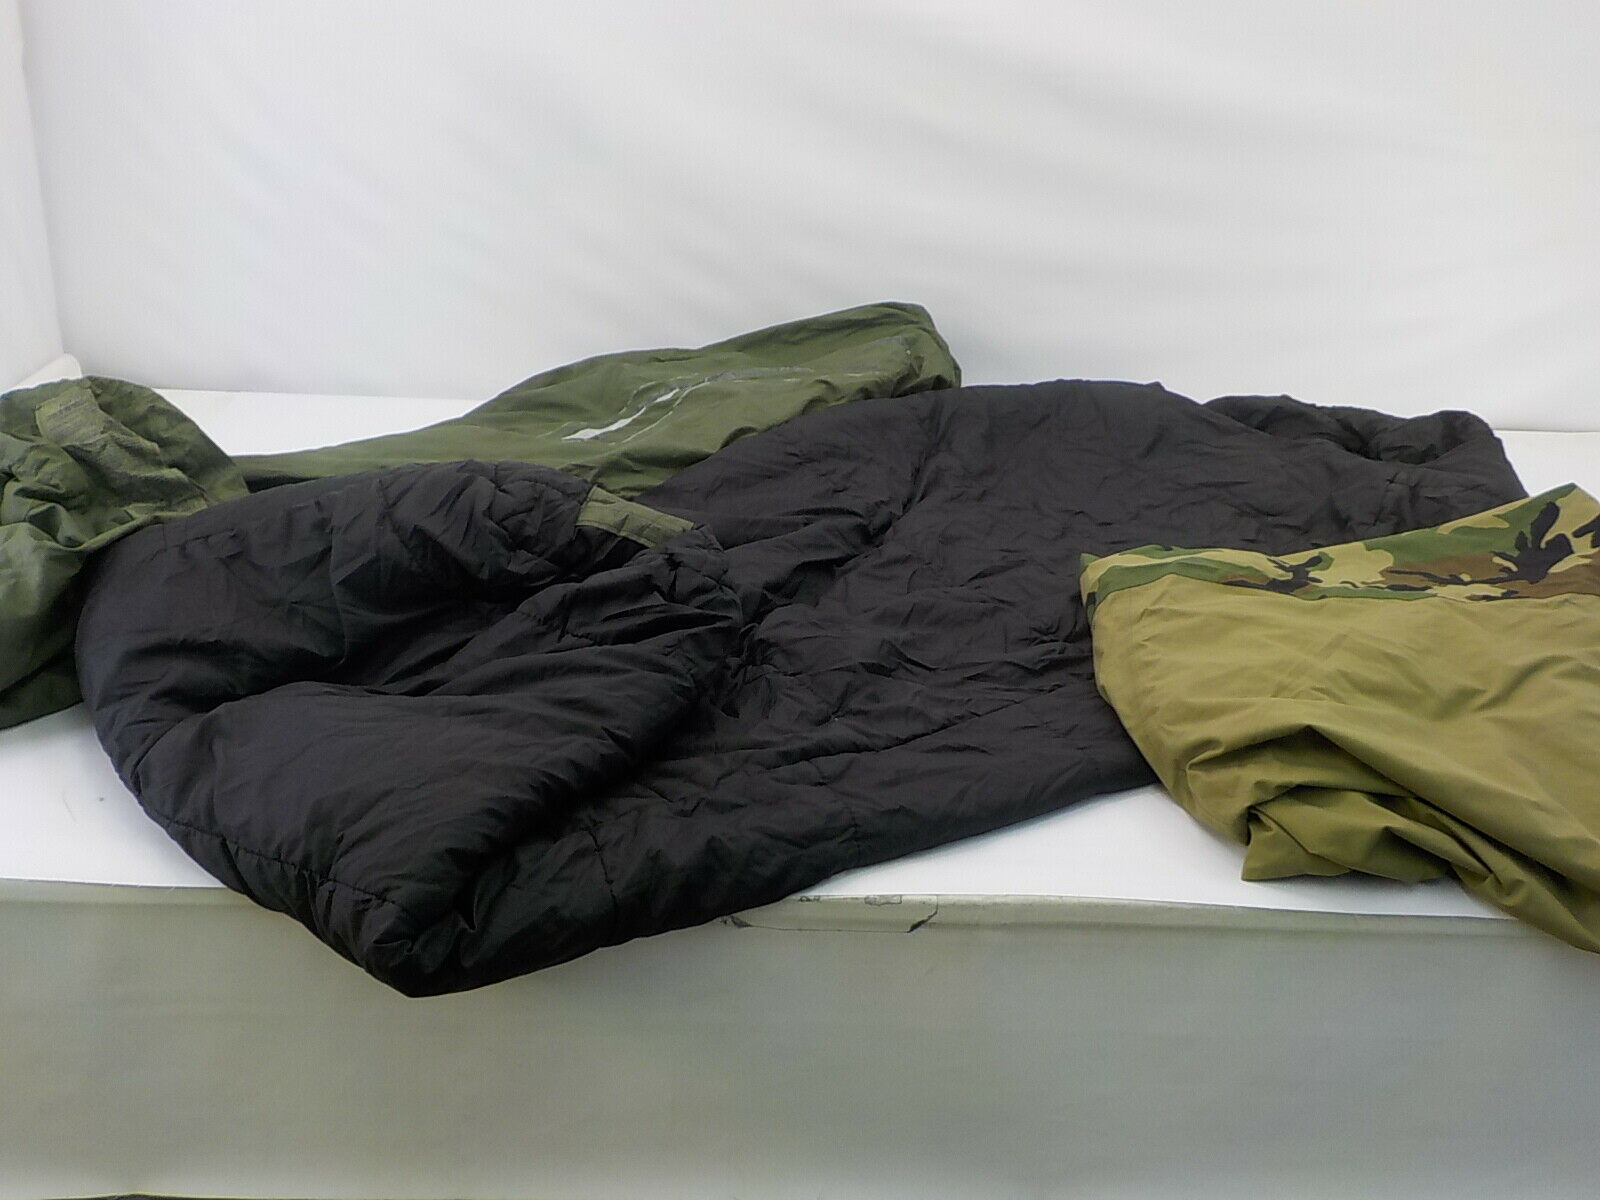 Military Outdoor Clothing K1023 - U.S. G.I. Modular Sleeping Bag System, 4 Piece